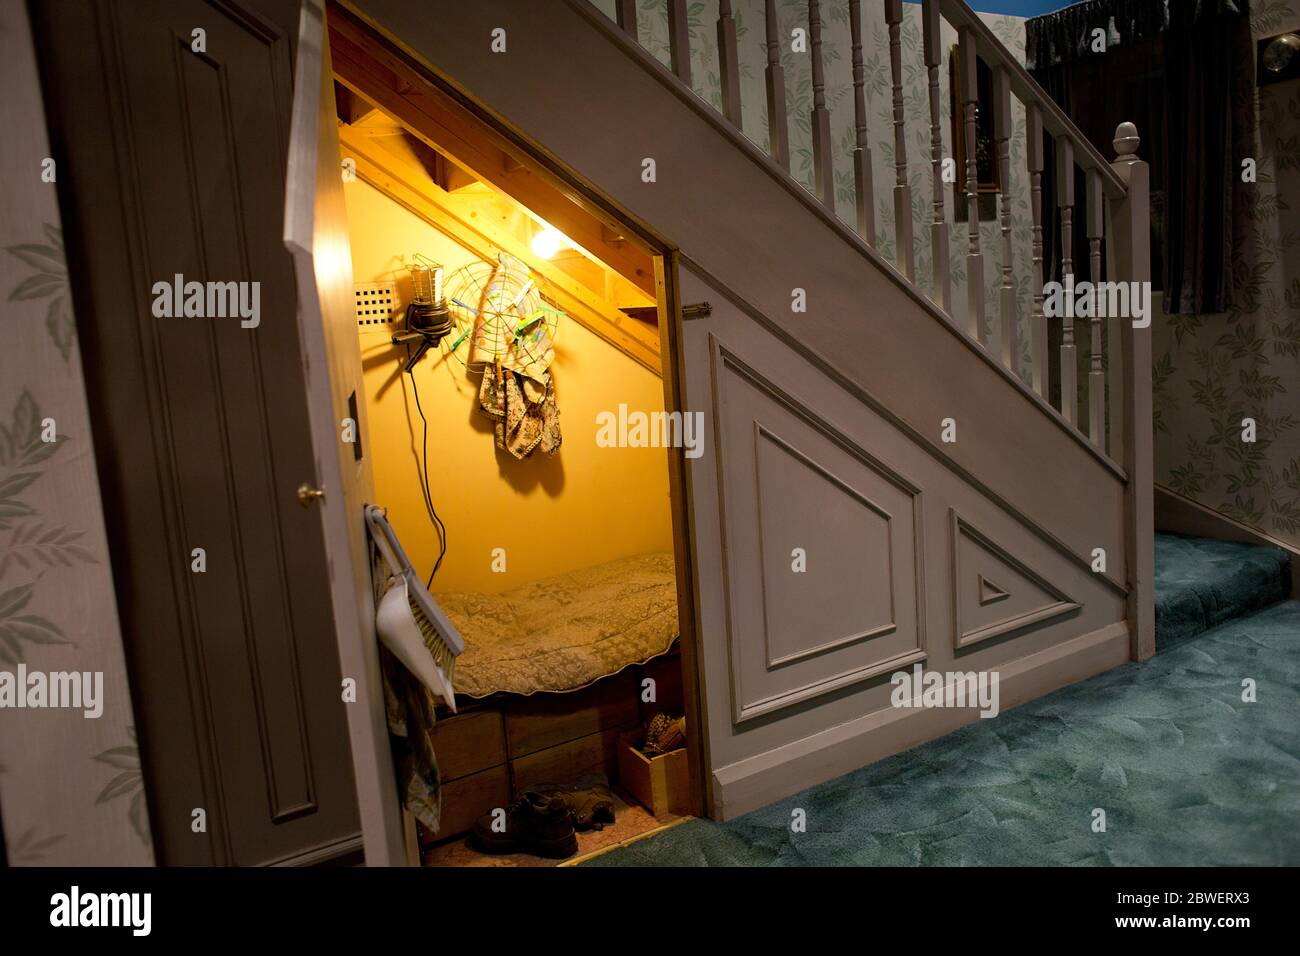 Harry Potter S Bedroom Under The Staircase At Warner Bros Studios Tour London Uk Harry Potter Studio Tour Backstage Objects Movies Factory Stock Photo Alamy